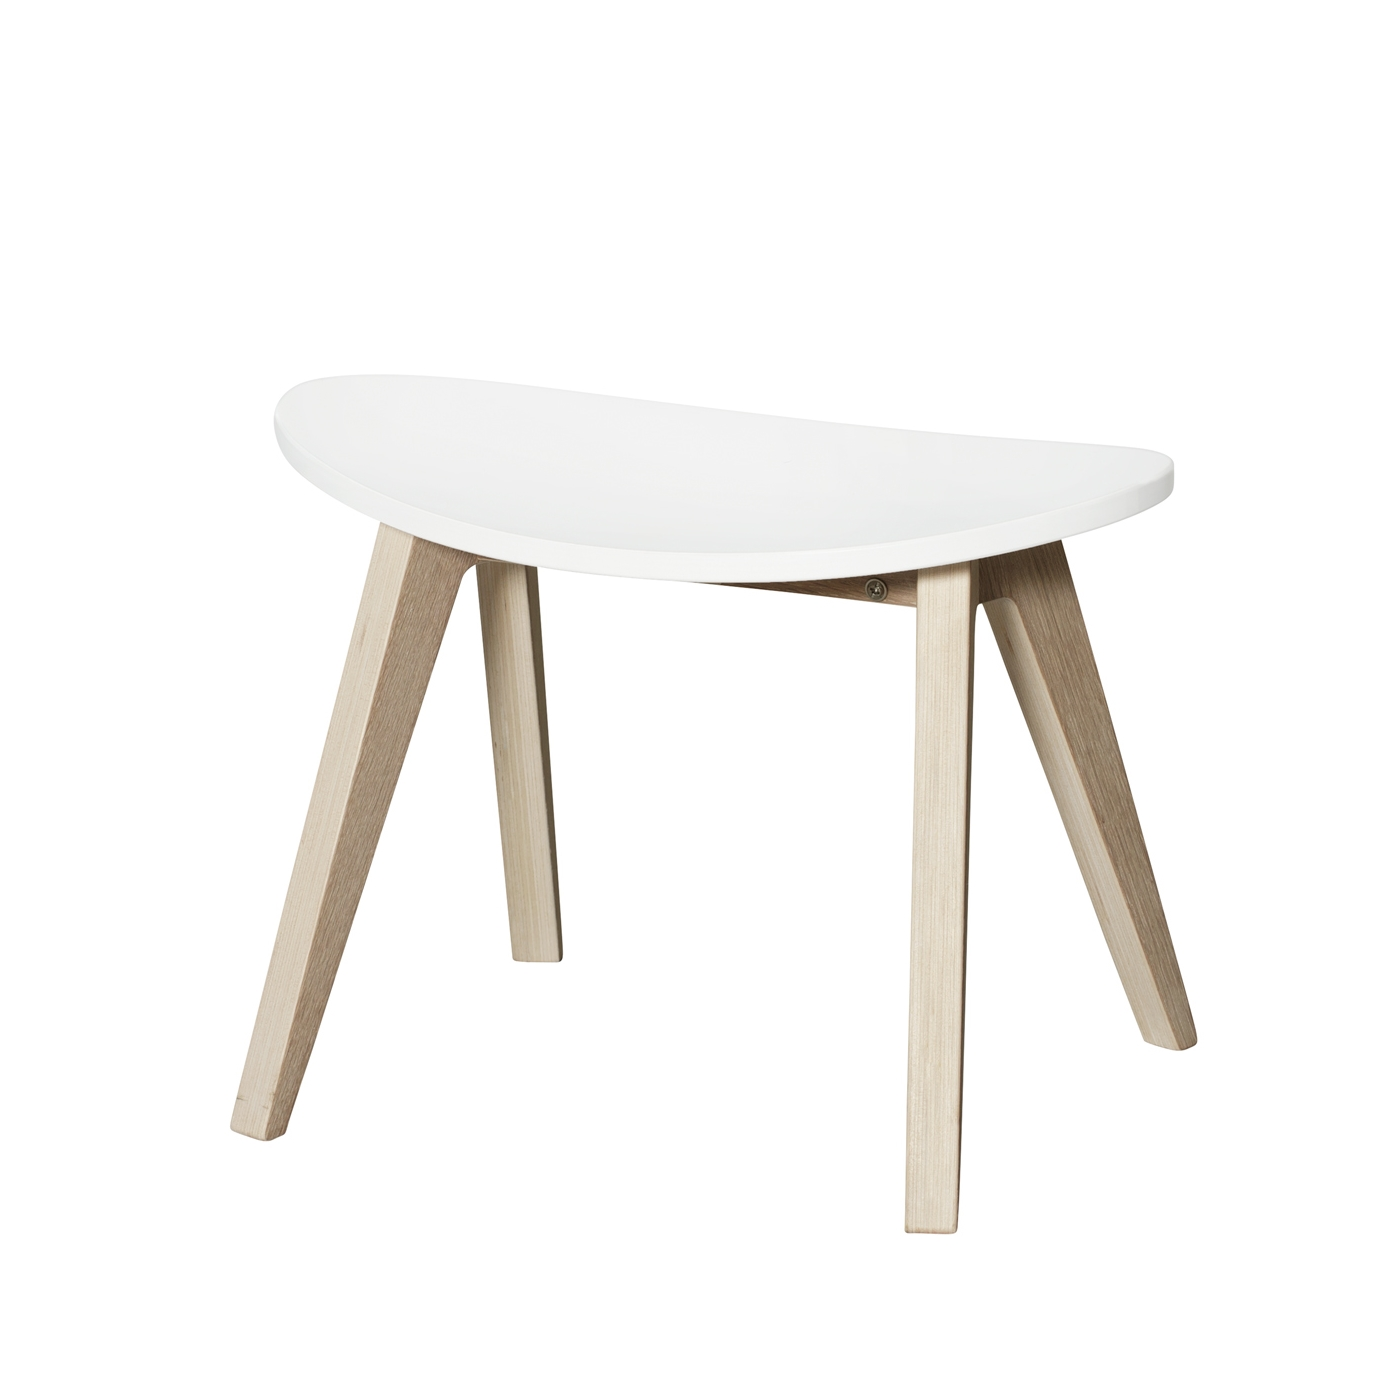 Pall PingPong Wood collection vit sits, Oliver Furniture